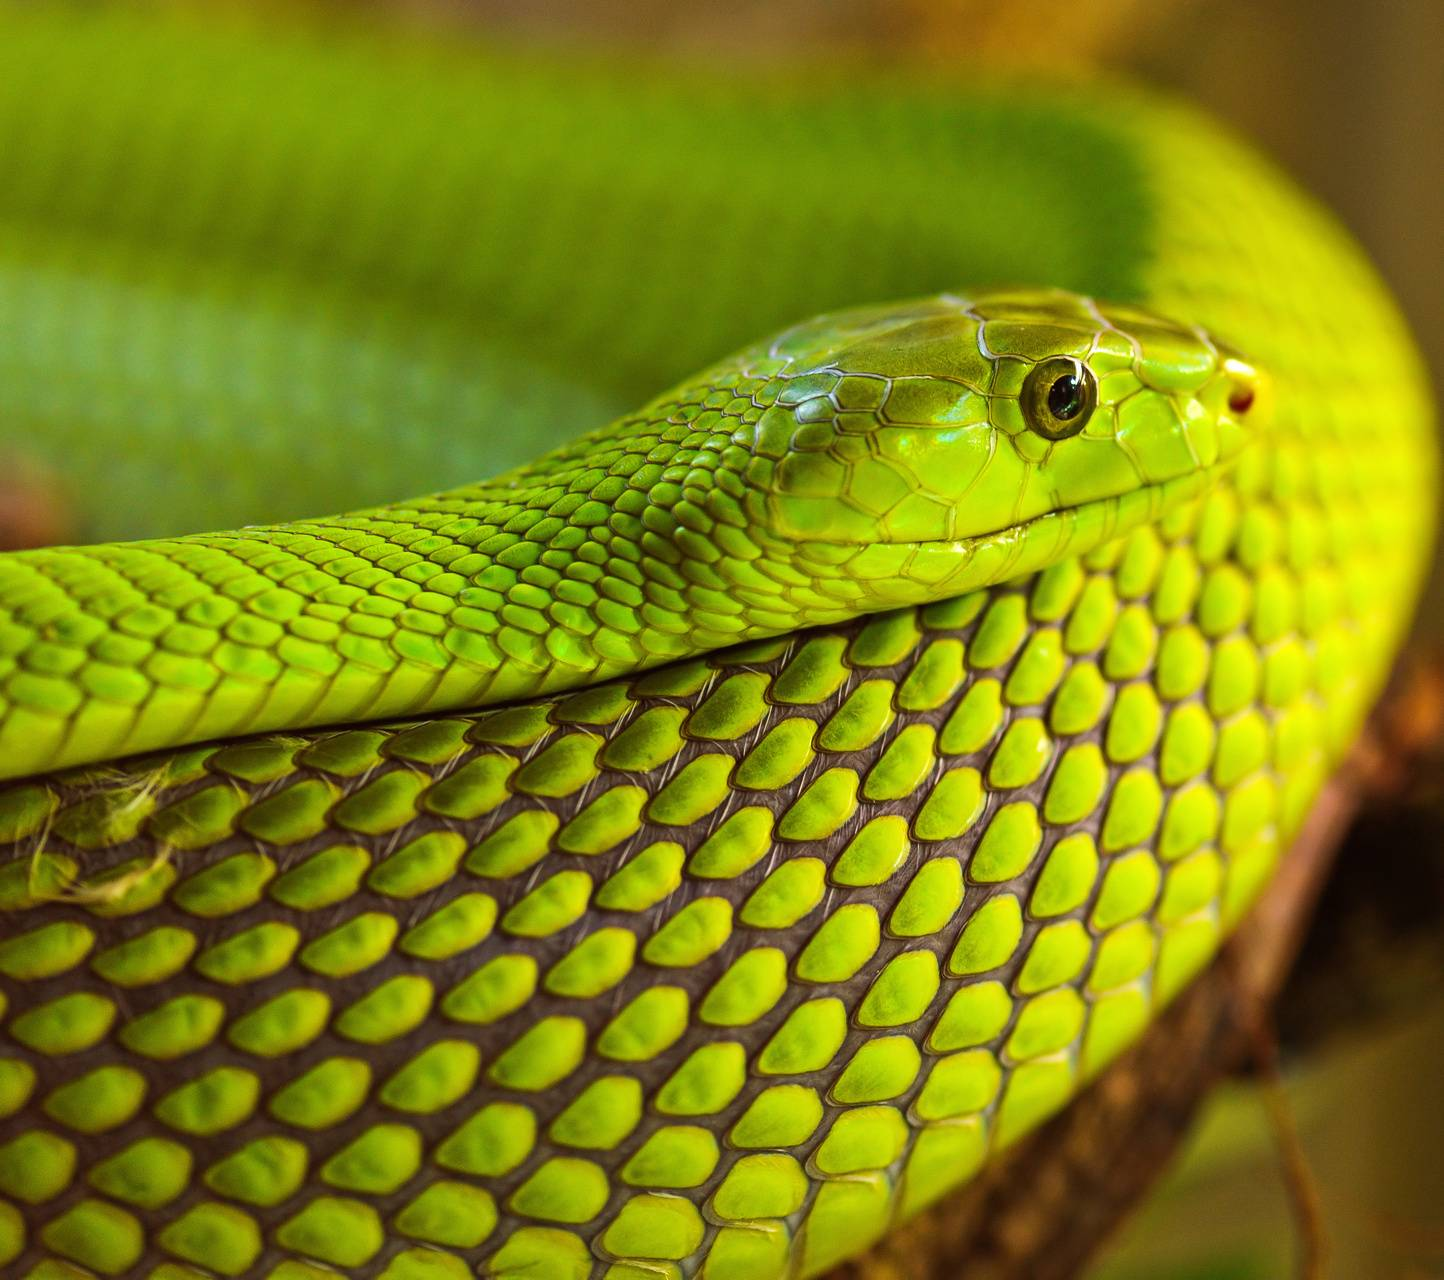 Snakes 1